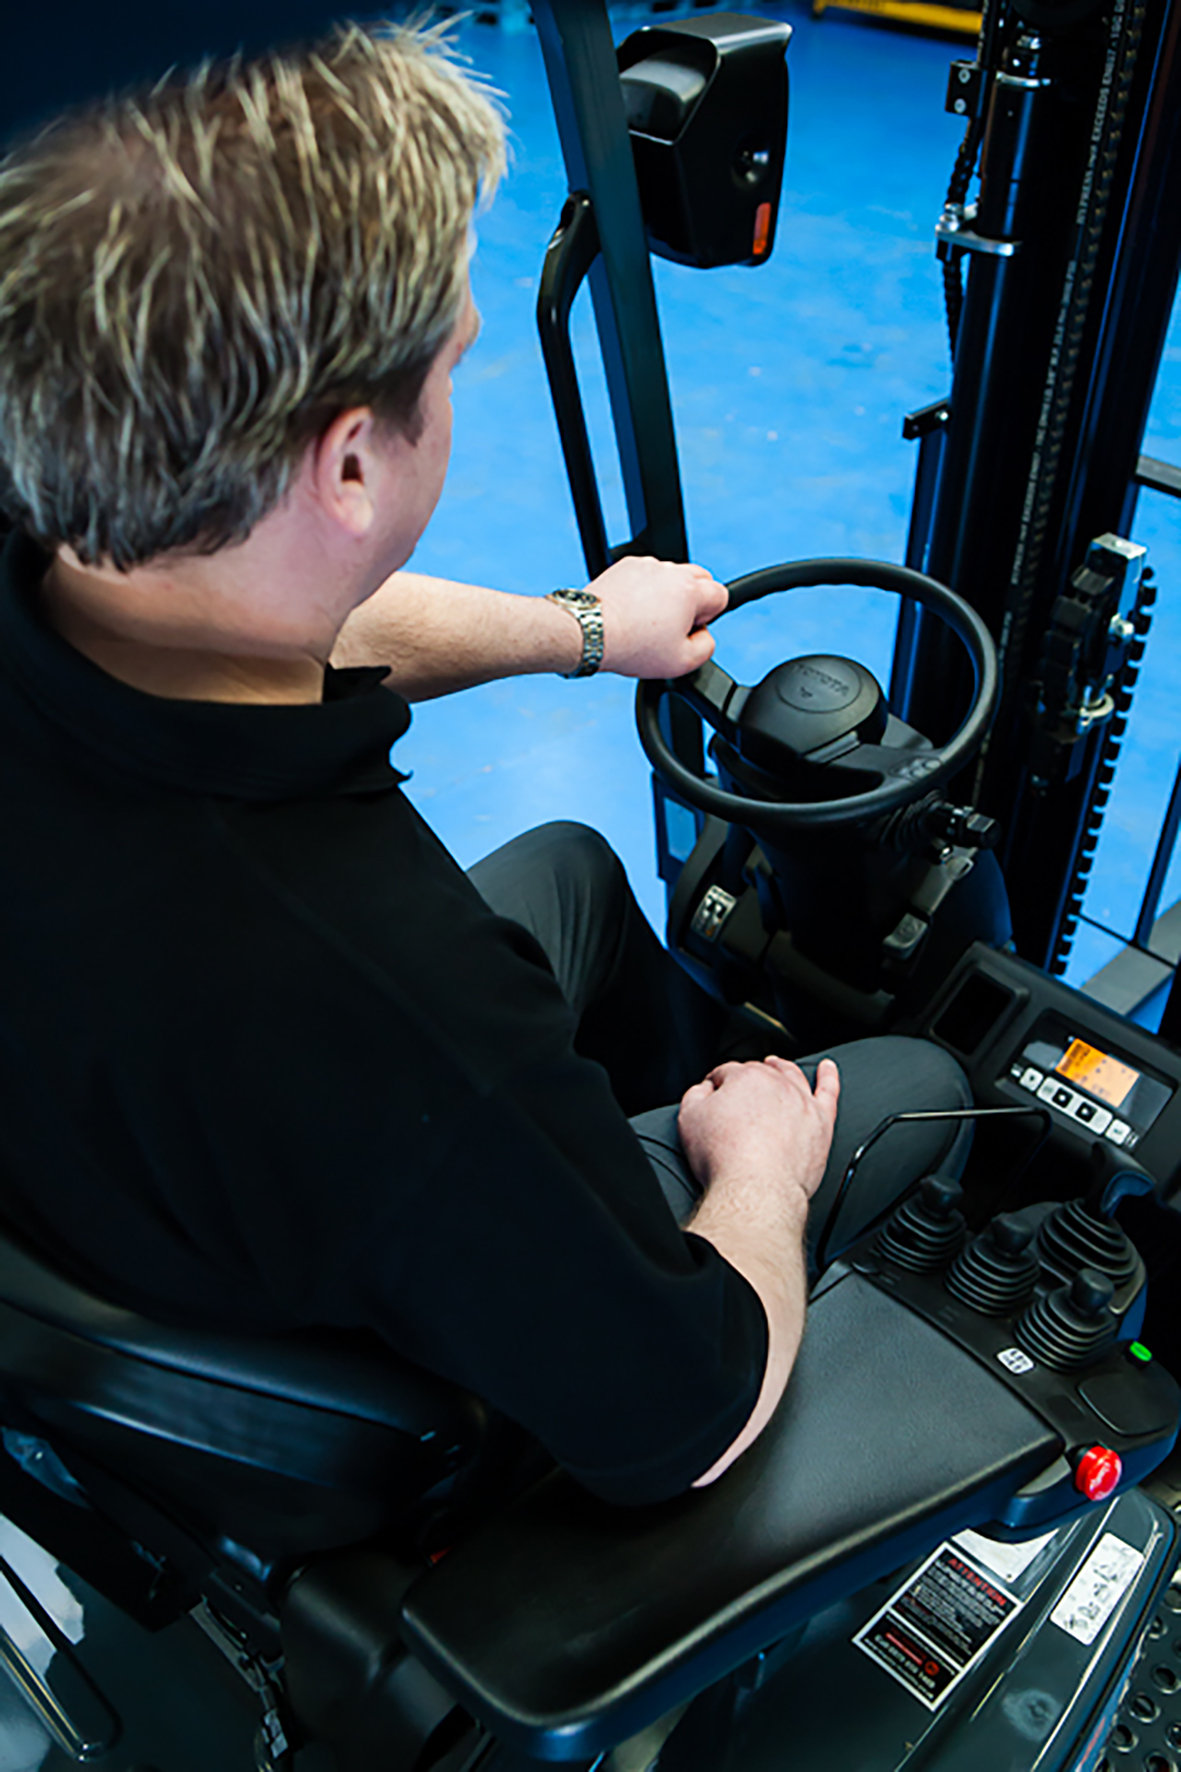 Getting On Board with Lift Truck Safety